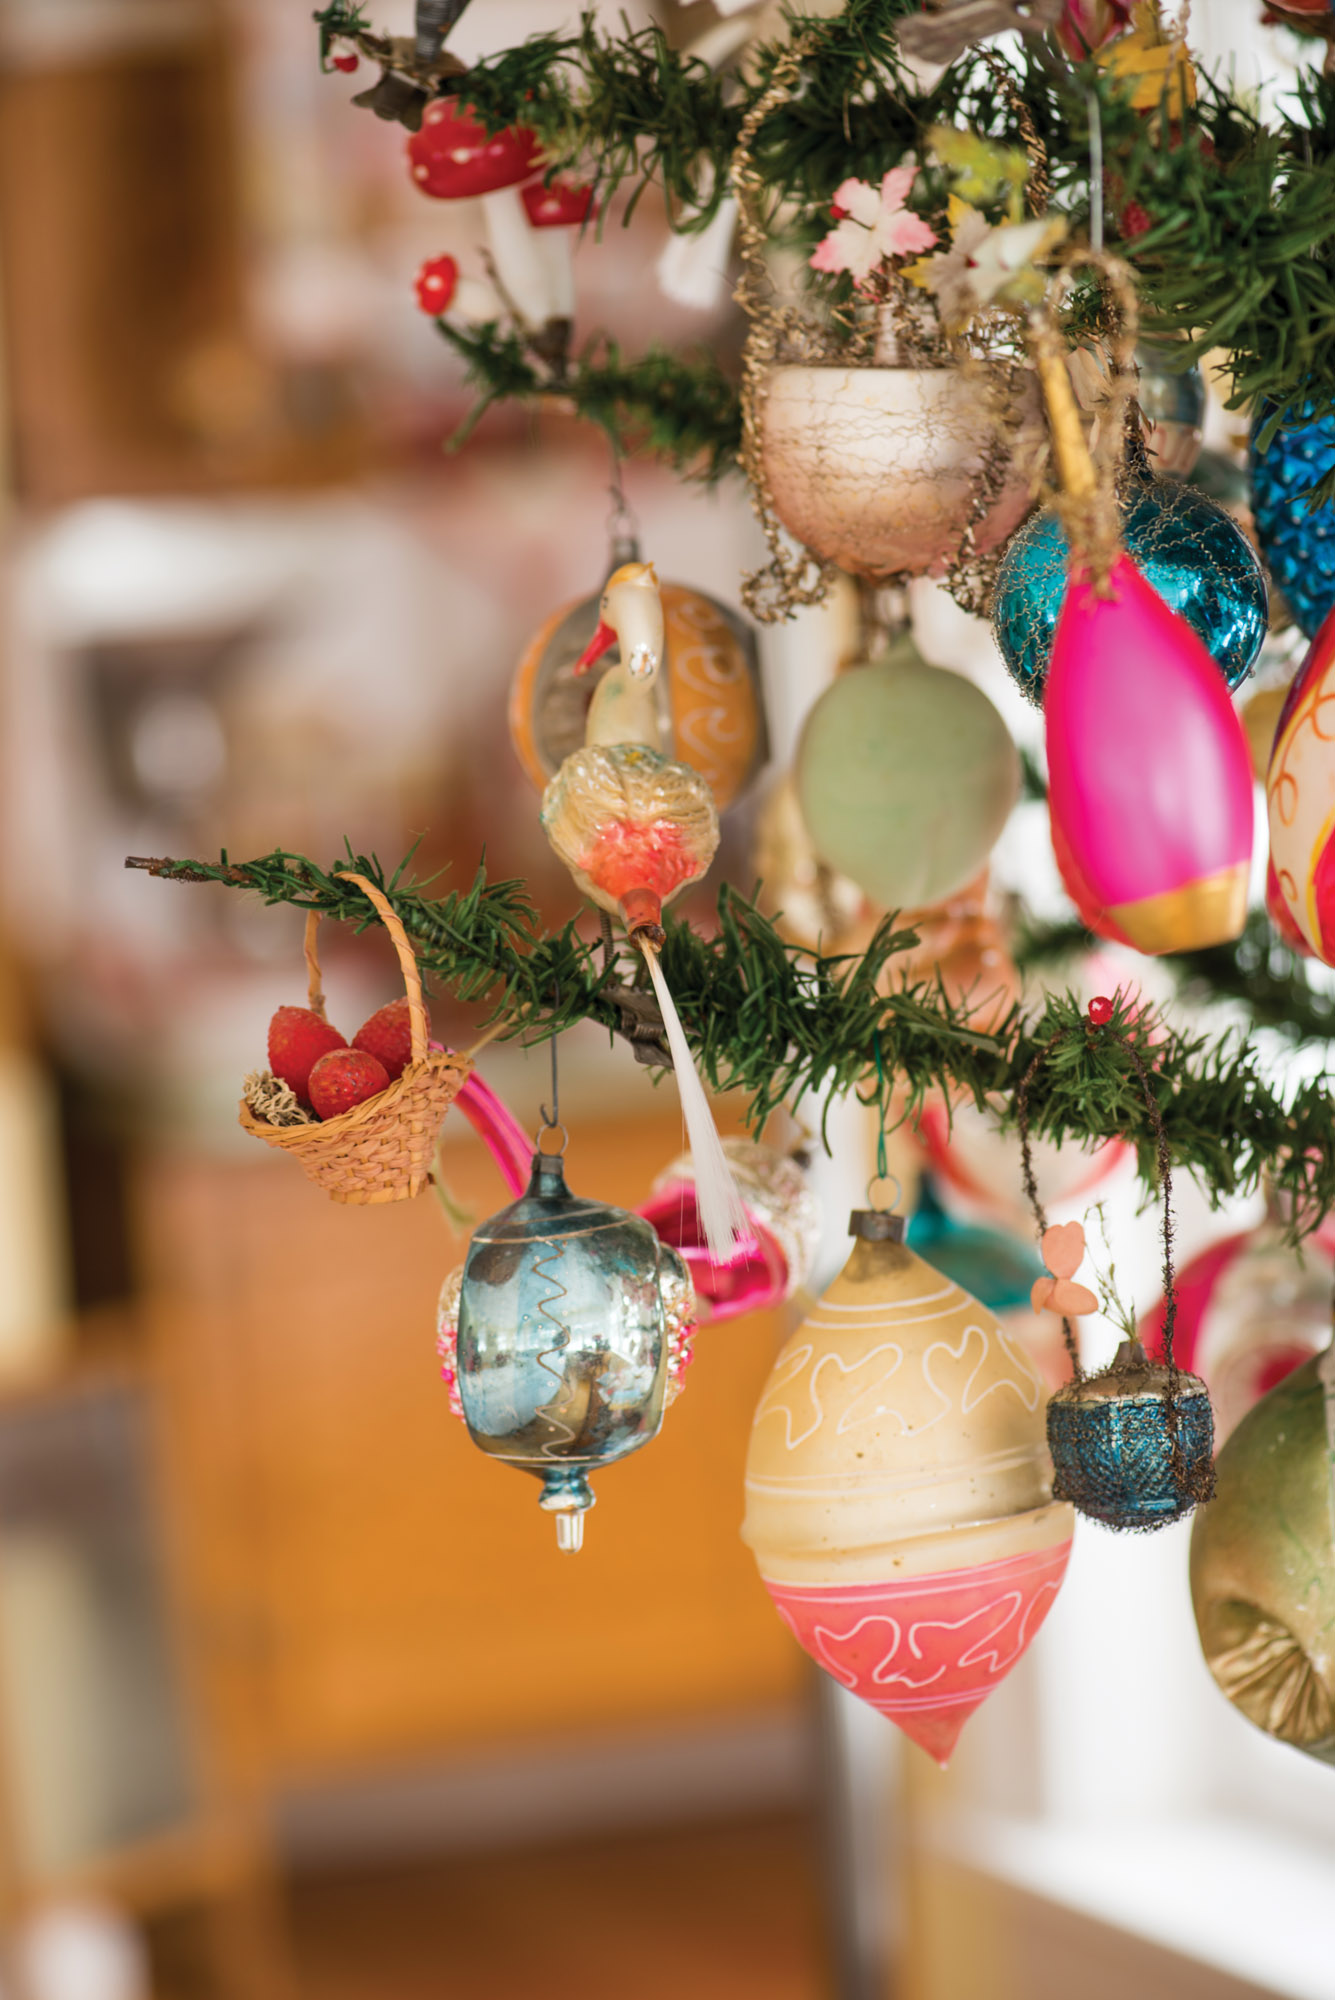 Celebrating the Holidays with Antiques